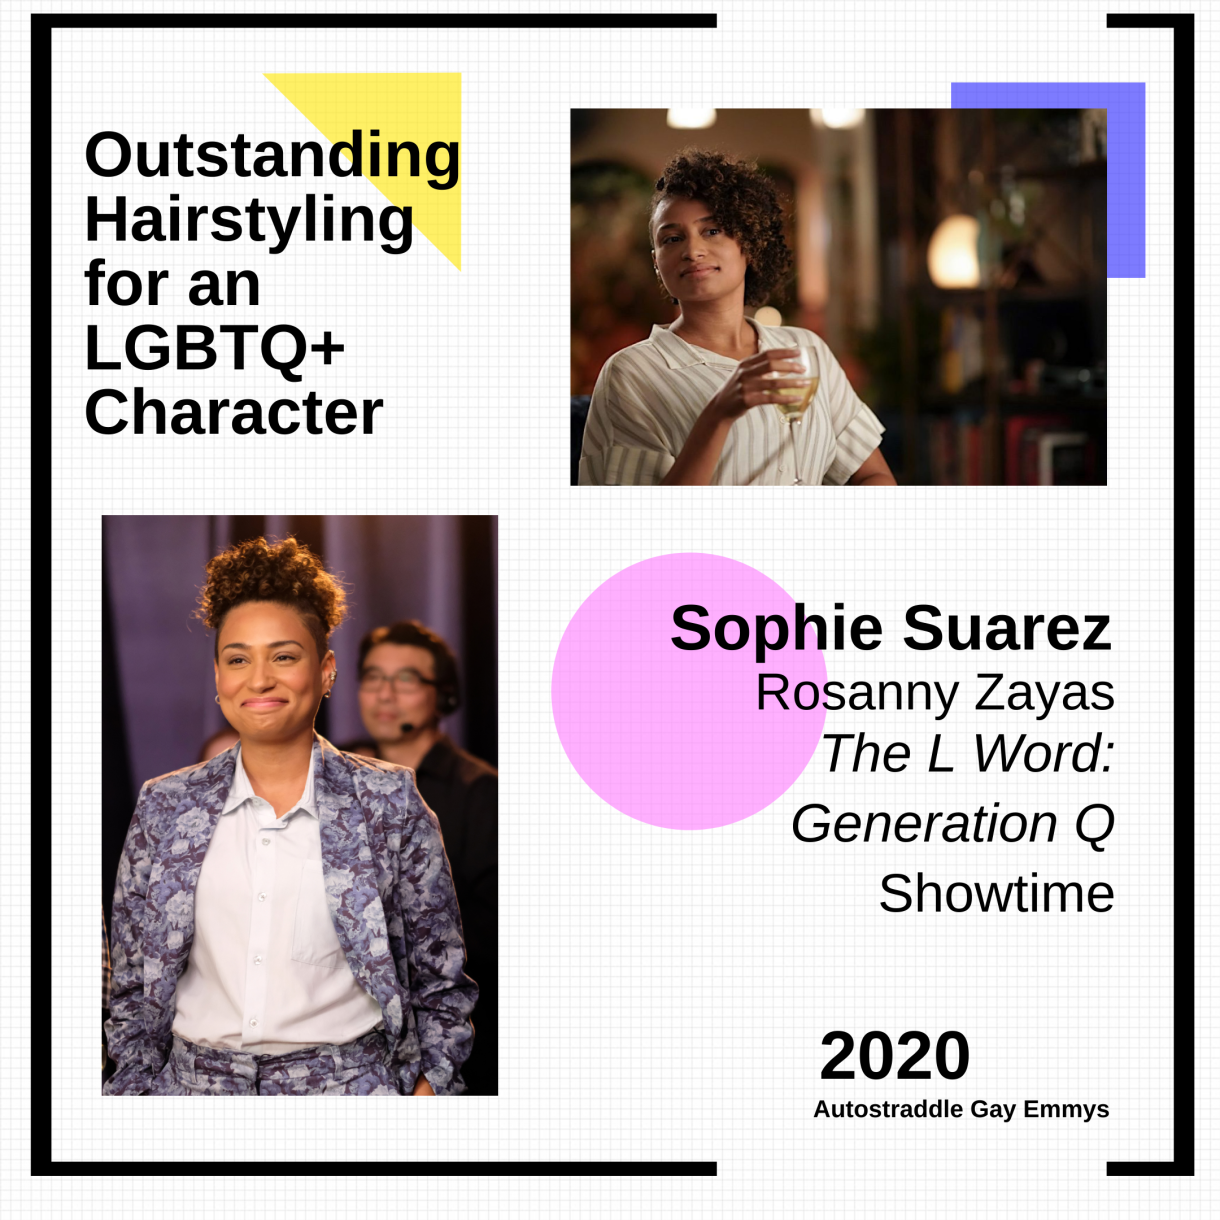 "Outstanding Hairstyling for an LGBTQ+ Character: Sophie Suarez ""The L Word: Generation Q""."" Two pictures of Sophie with her hair looking cute."